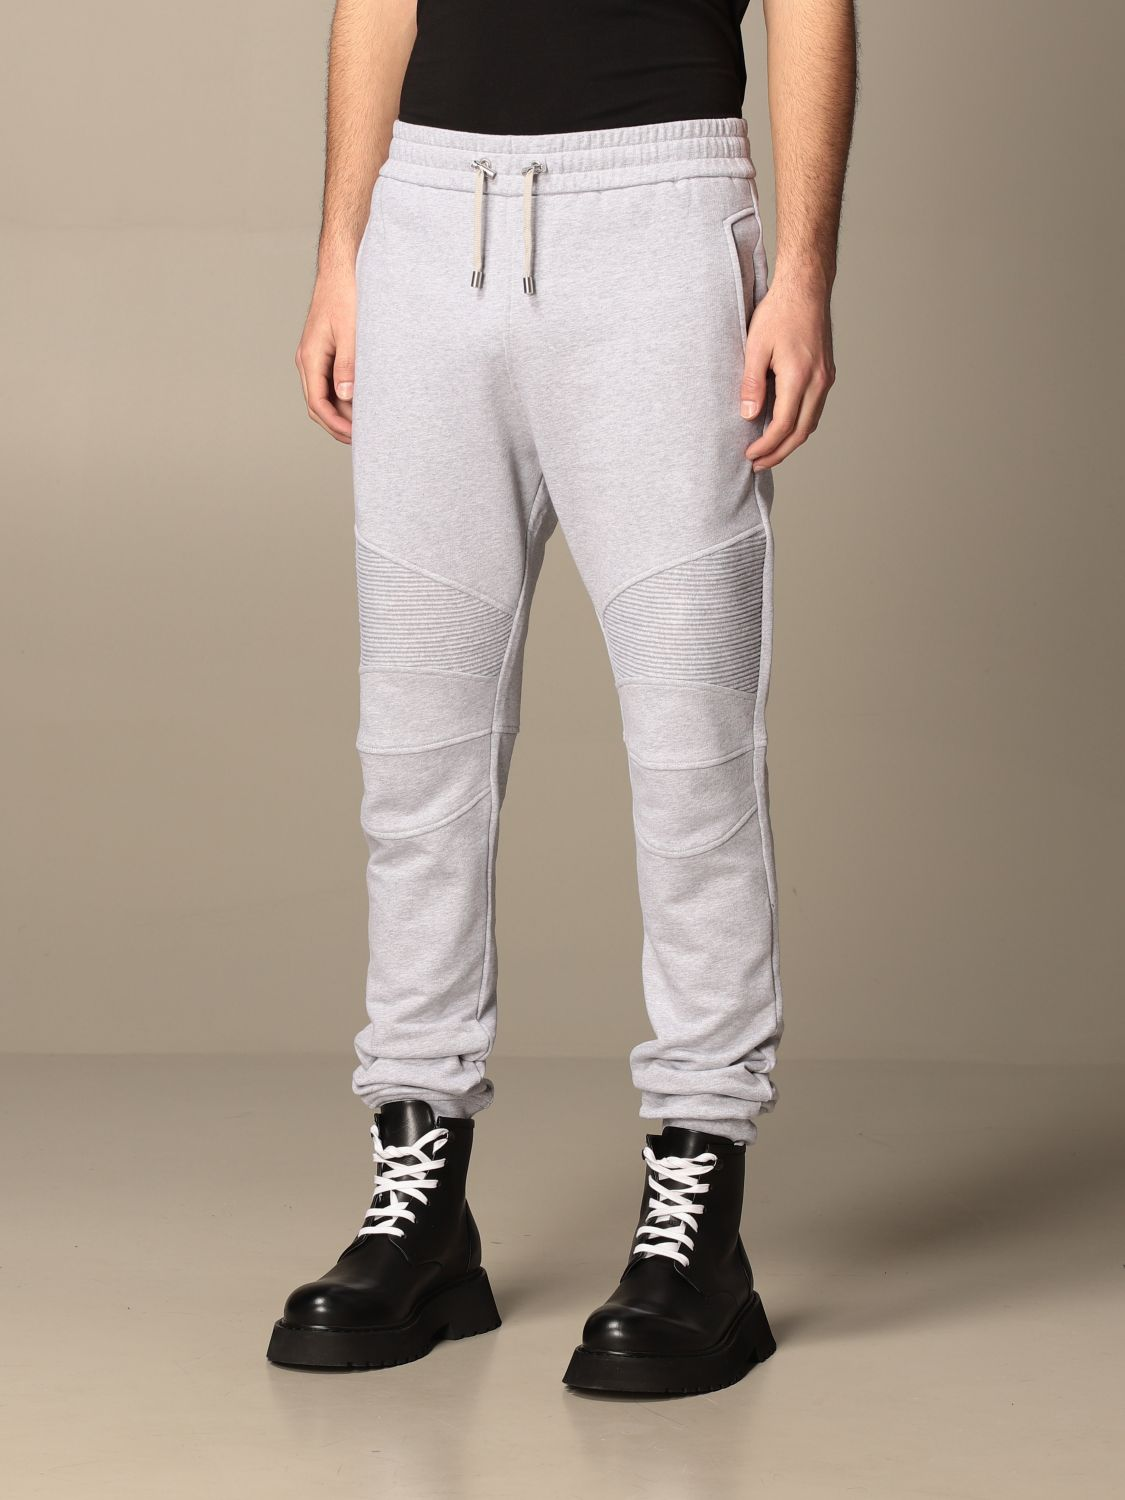 Trousers Balmain: Balmain cotton jogging trousers with logo grey 4